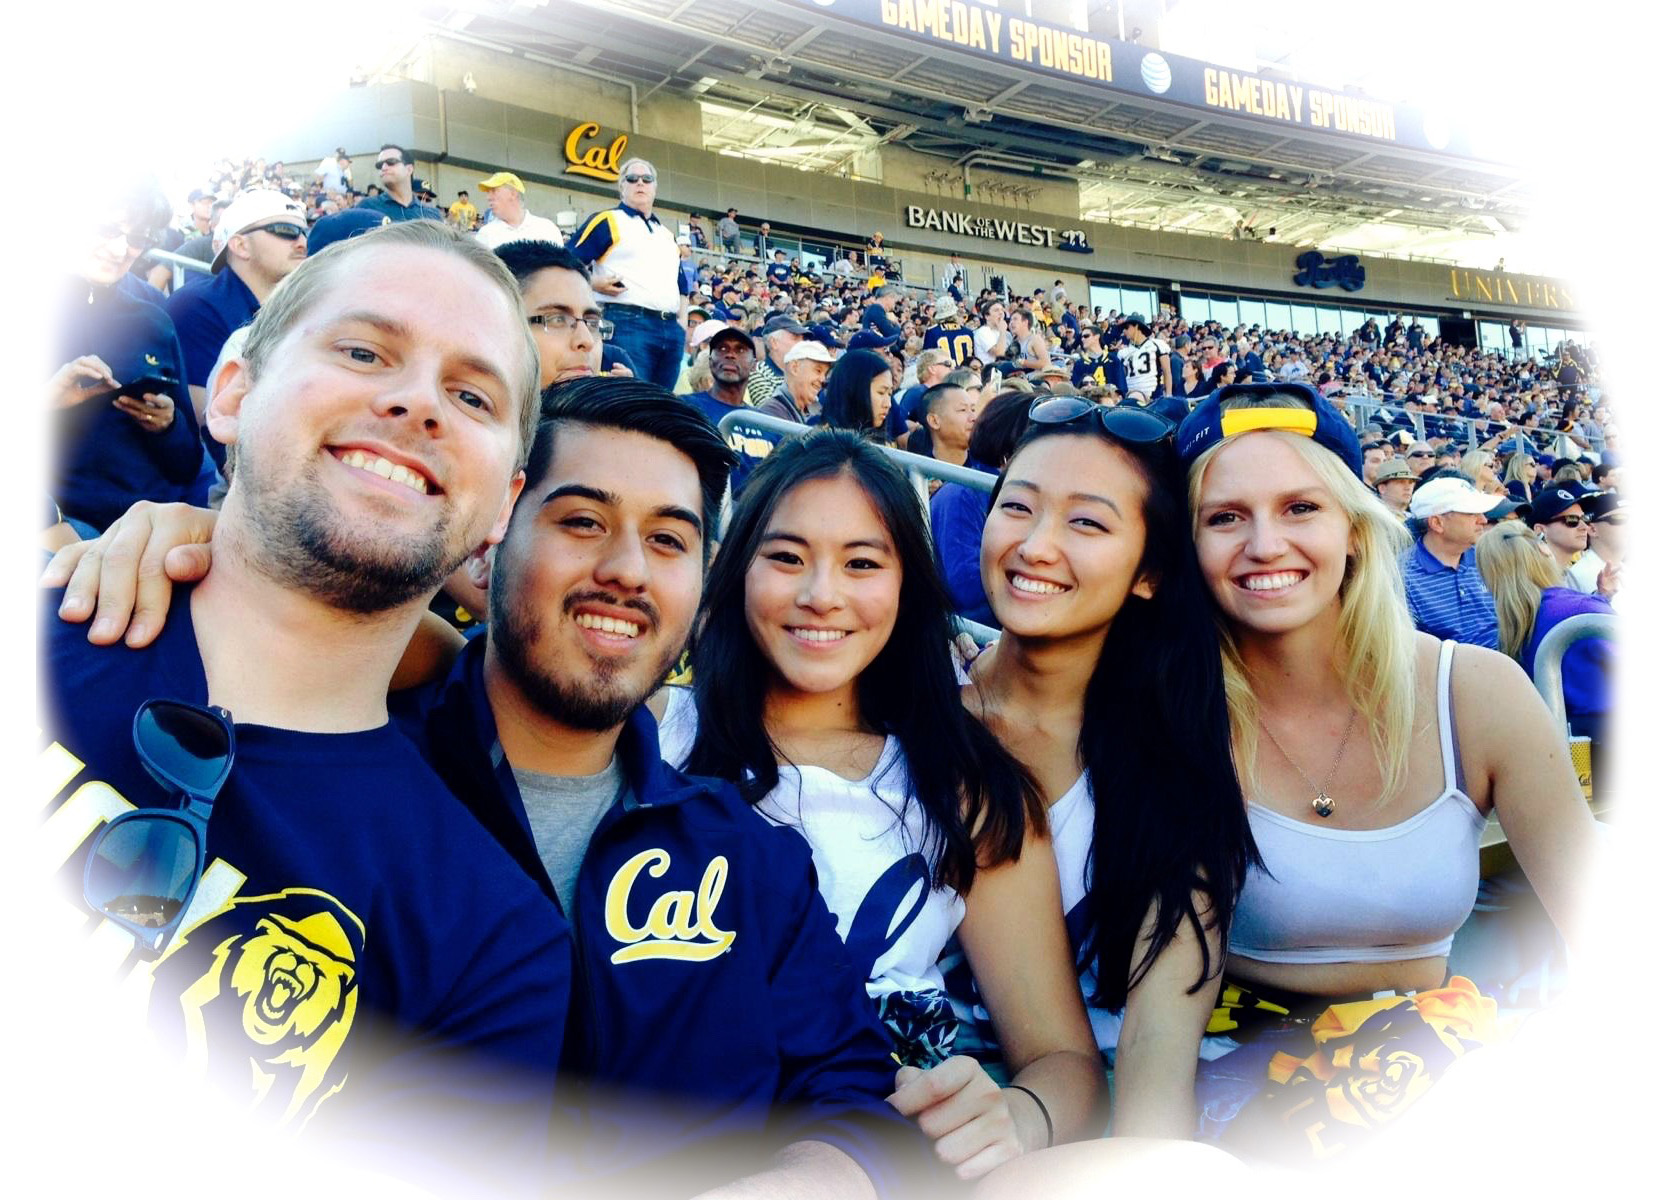 me and my friends at Cal